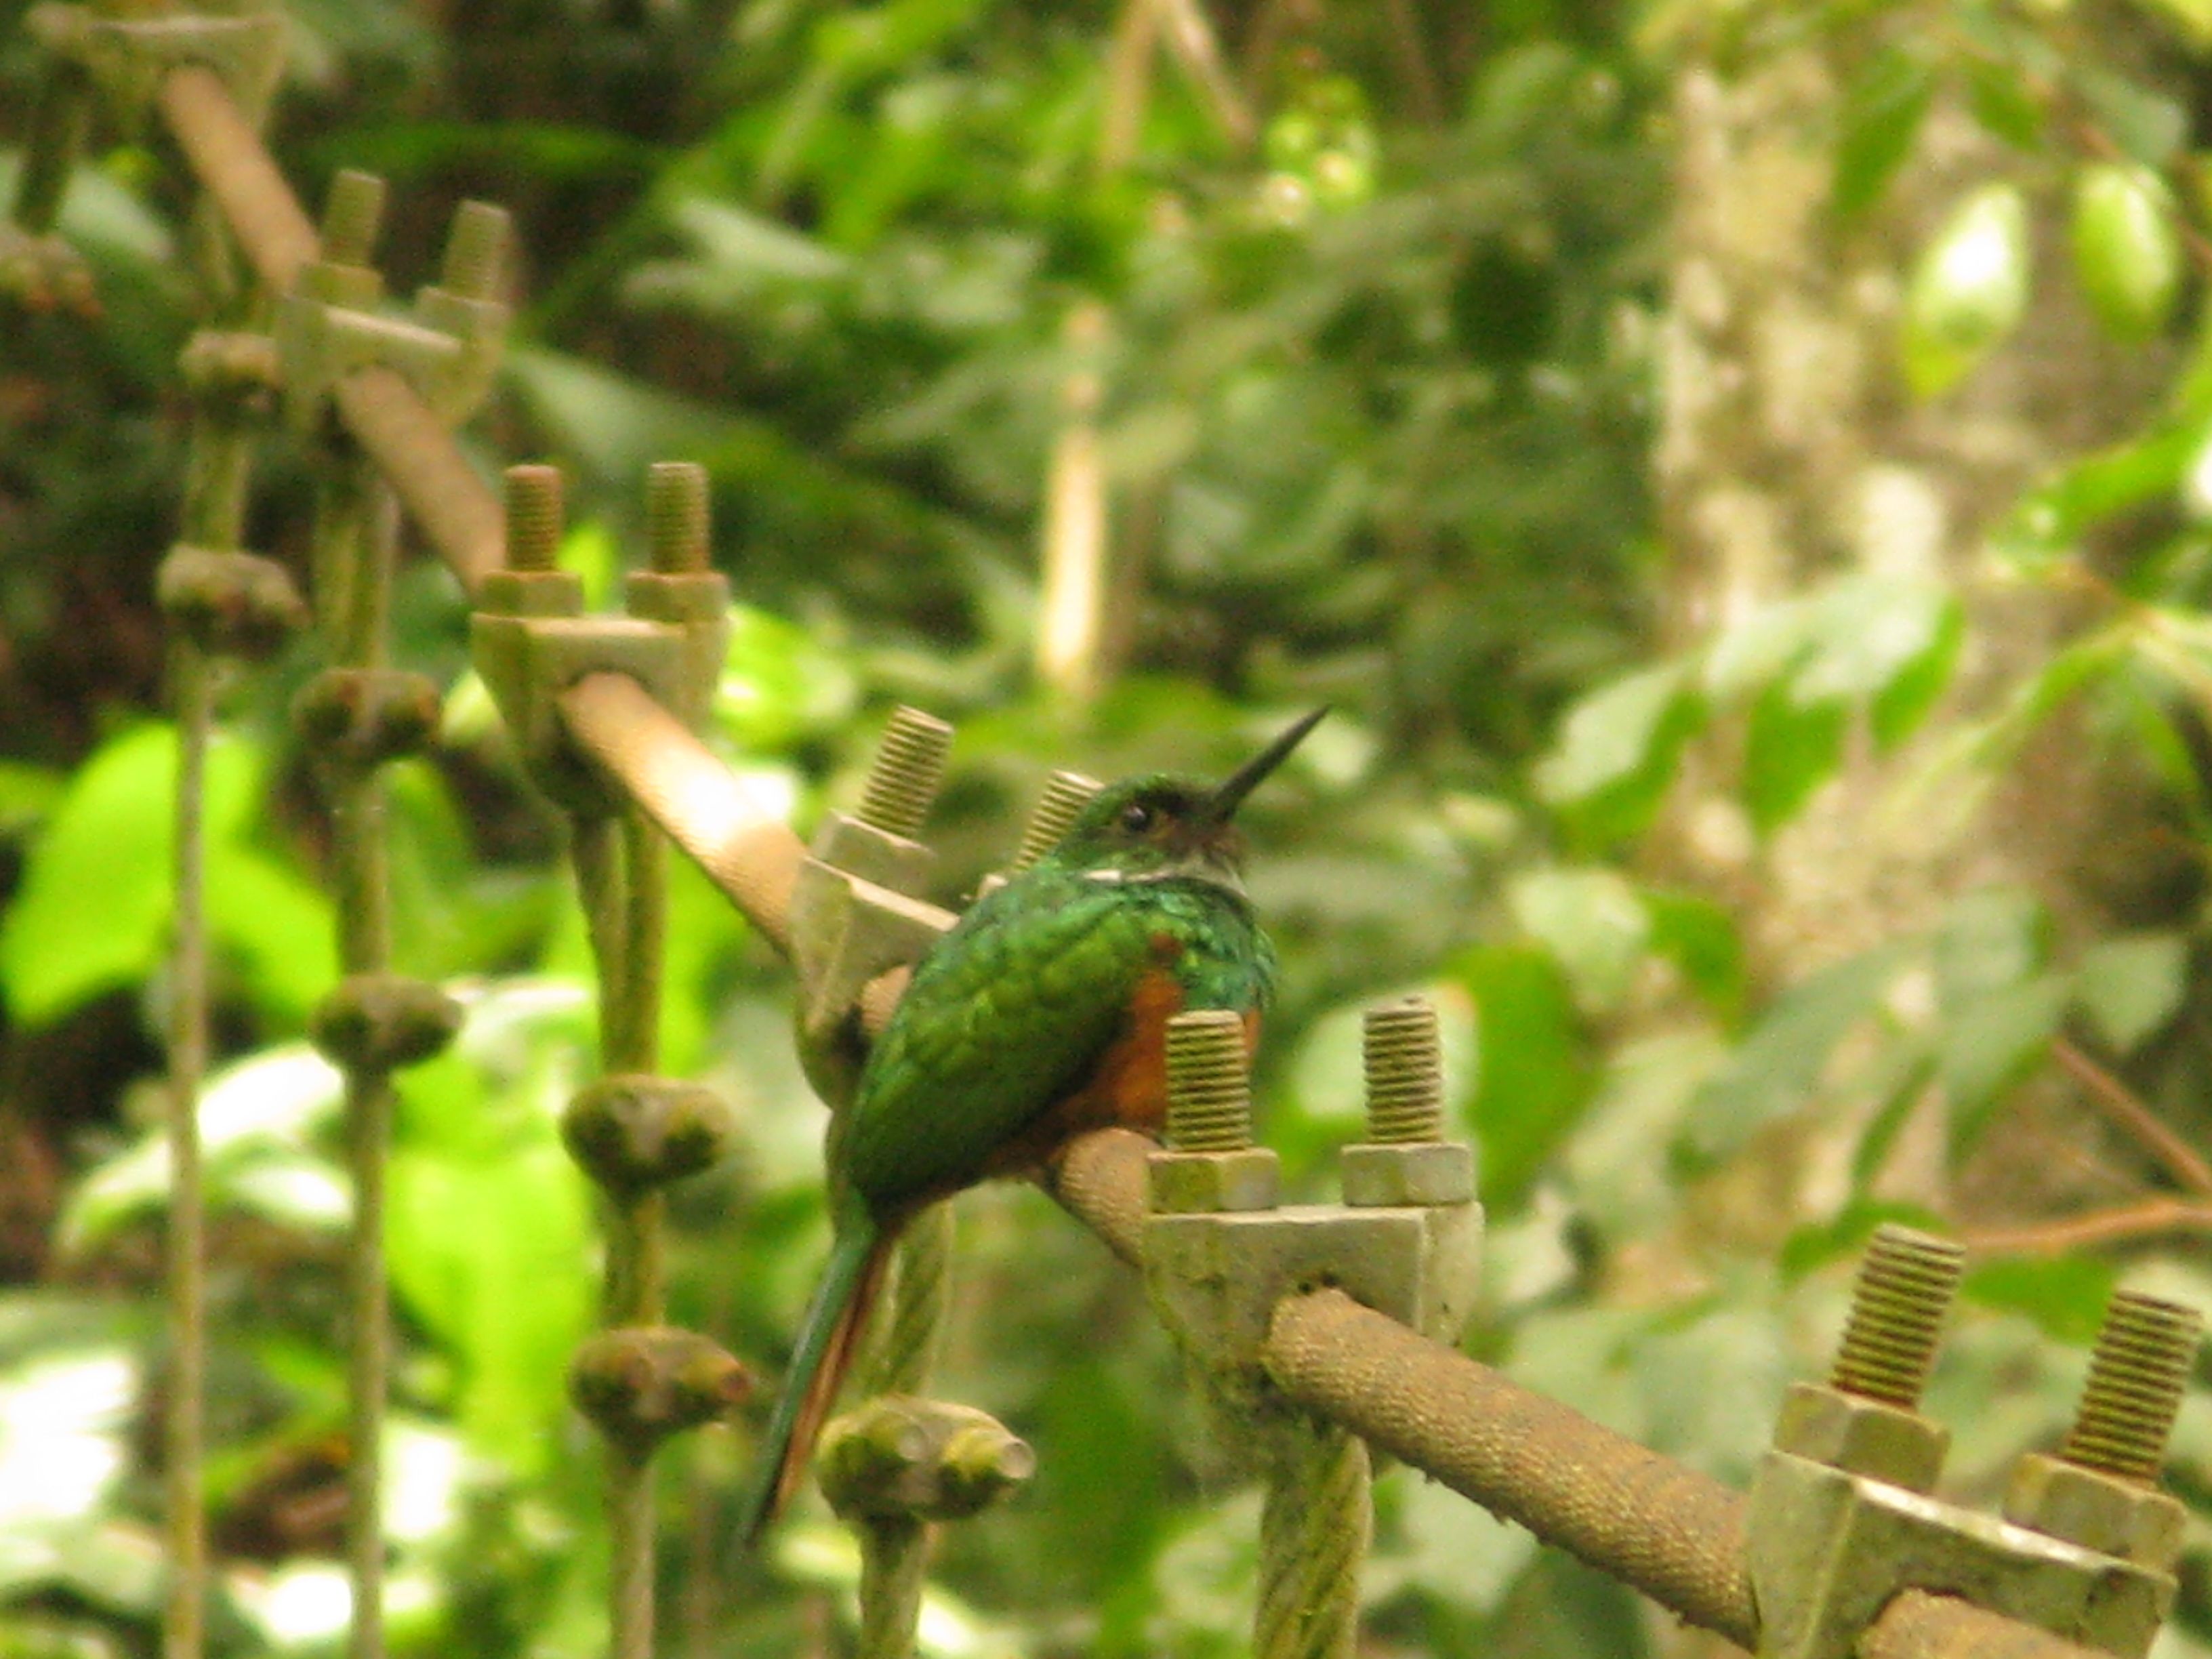 This little rufous tailed jacamar was another treat that got our guide, Andrei, really pumped.  There are two species of jacamar found in this part of Costa Rica, and the rufous tailed is by far the most rare...lucky us!  Andrei was jumping up and down after this guy flew away.